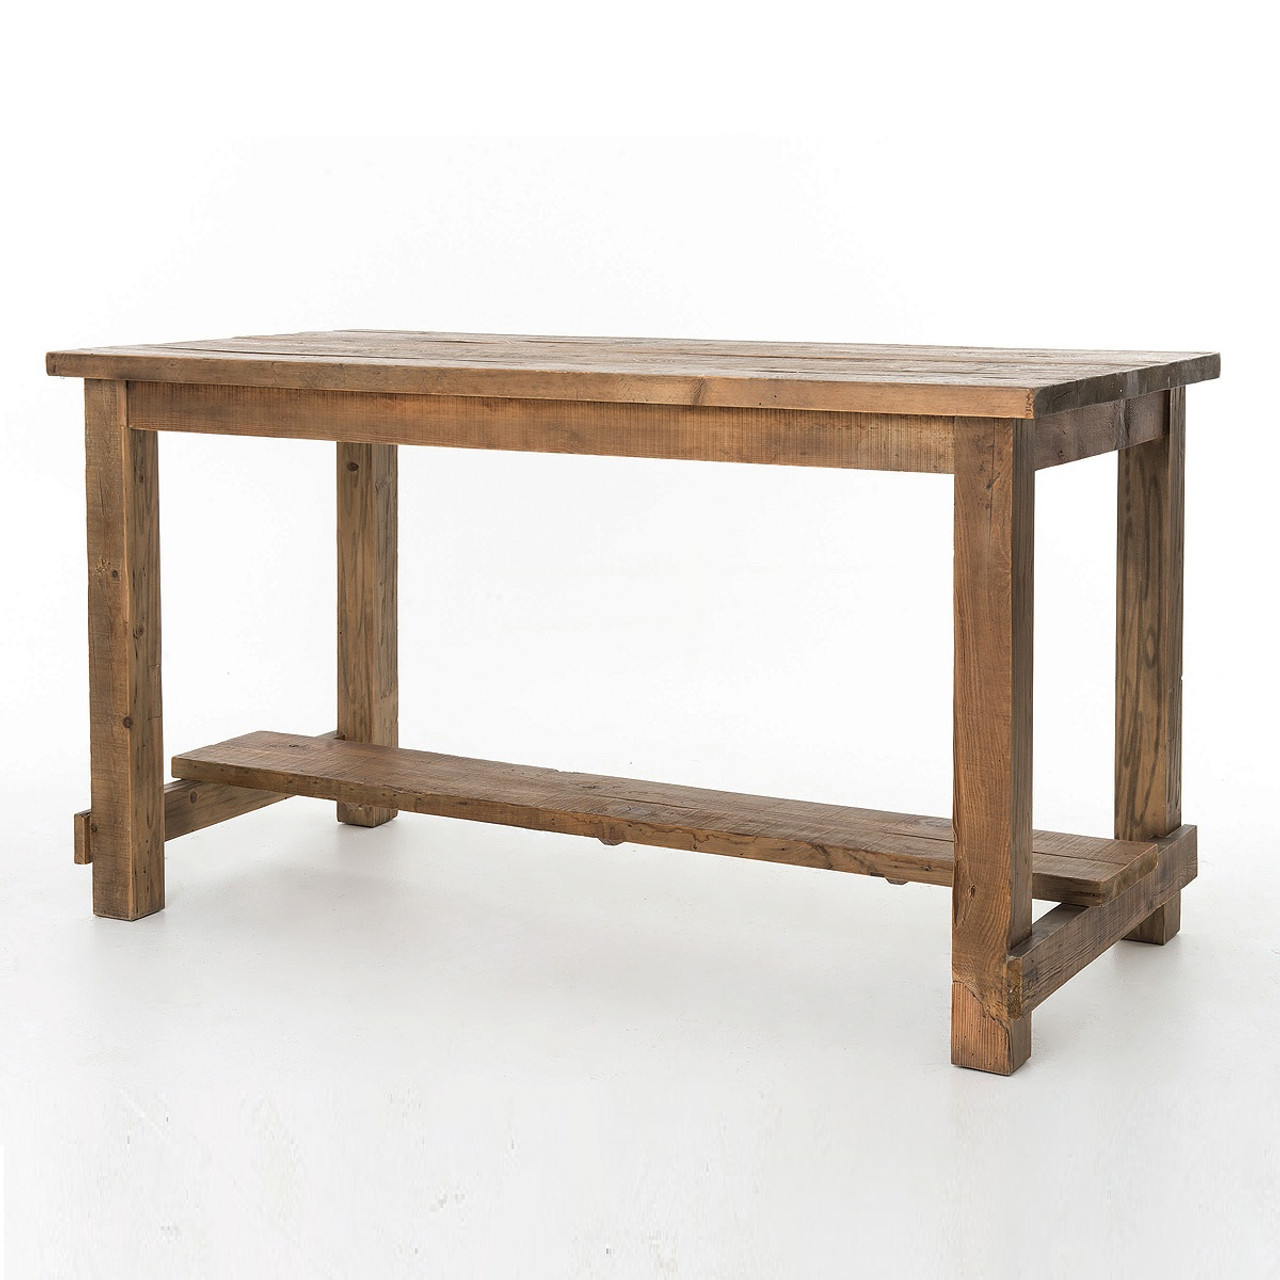 Eco friendly coffee tables side table desks zin home cecil farmhouse reclaimed wood pub table geotapseo Image collections